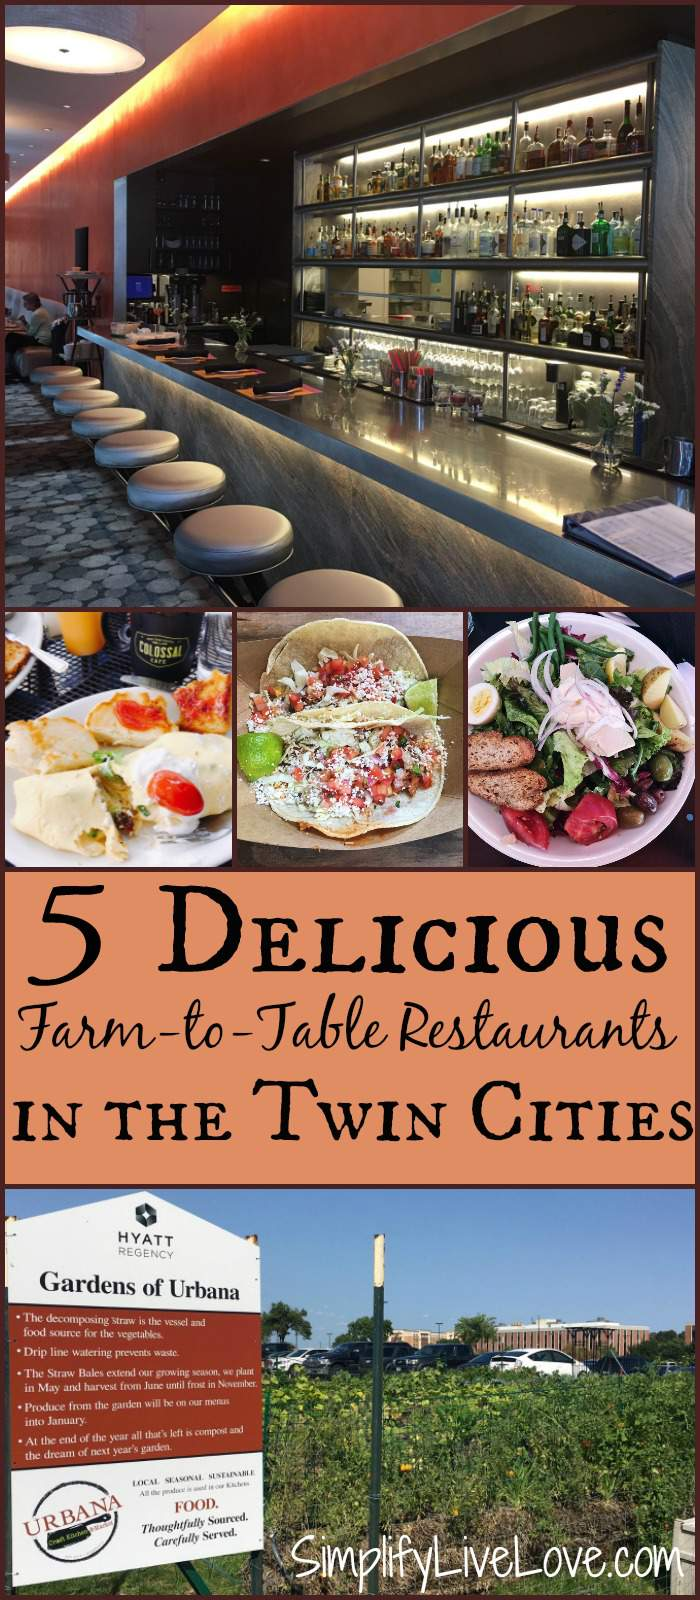 If you're heading to Minnesota, here 5 Delicious Farm-to-Table Restaurants you must try in the Twin Cities. USA